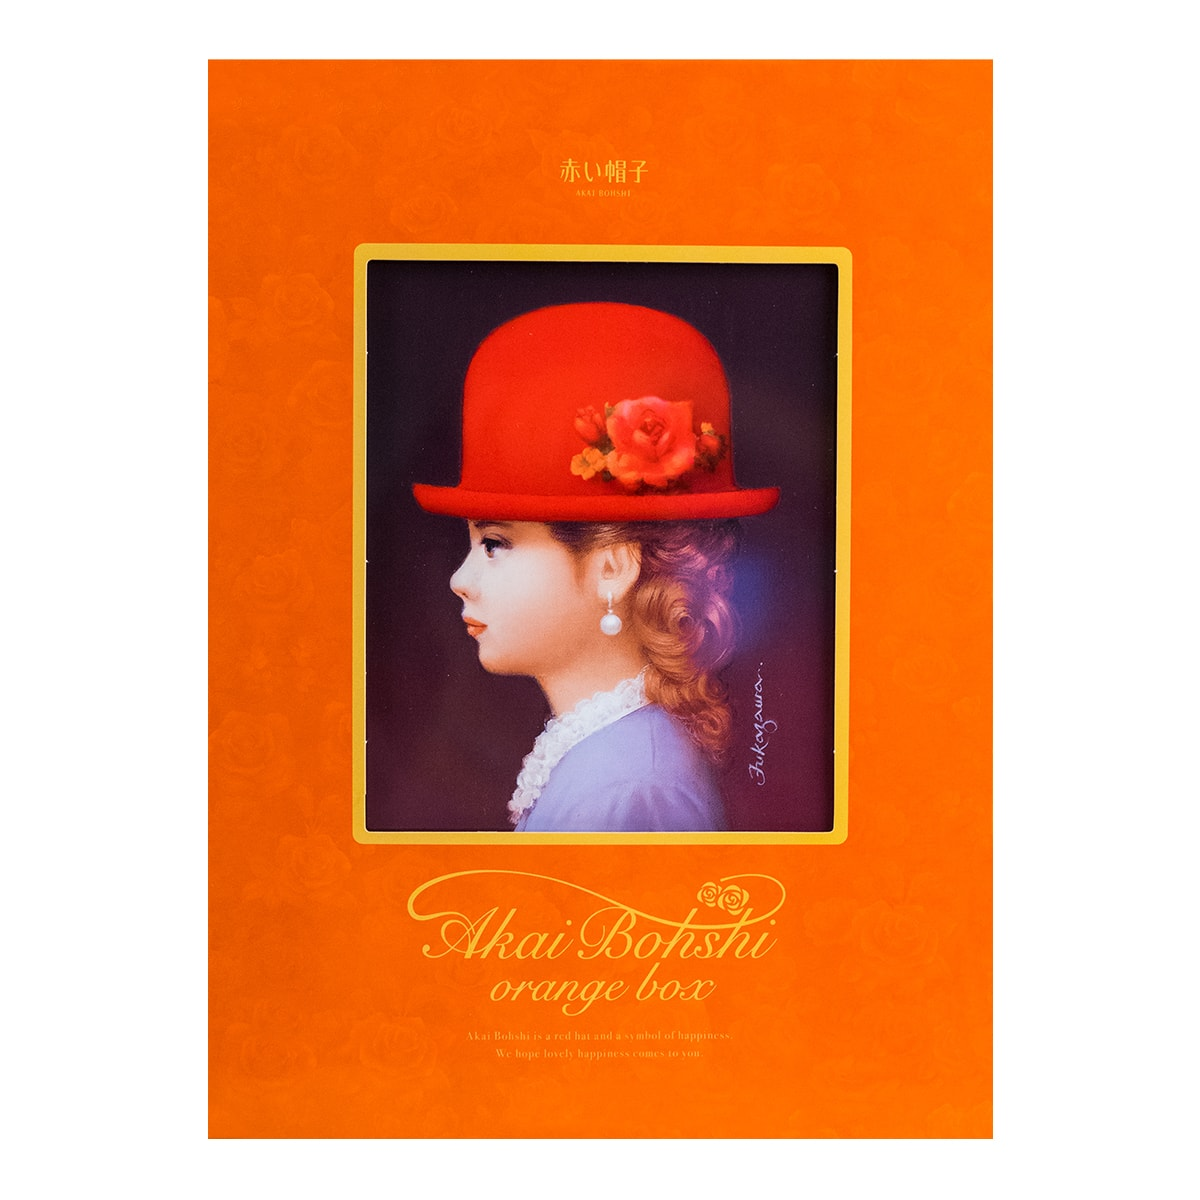 【Clearance】TIVOLINA Akai Bohshi Mixed Cookie Gift Box-Orange Box 26Pieces